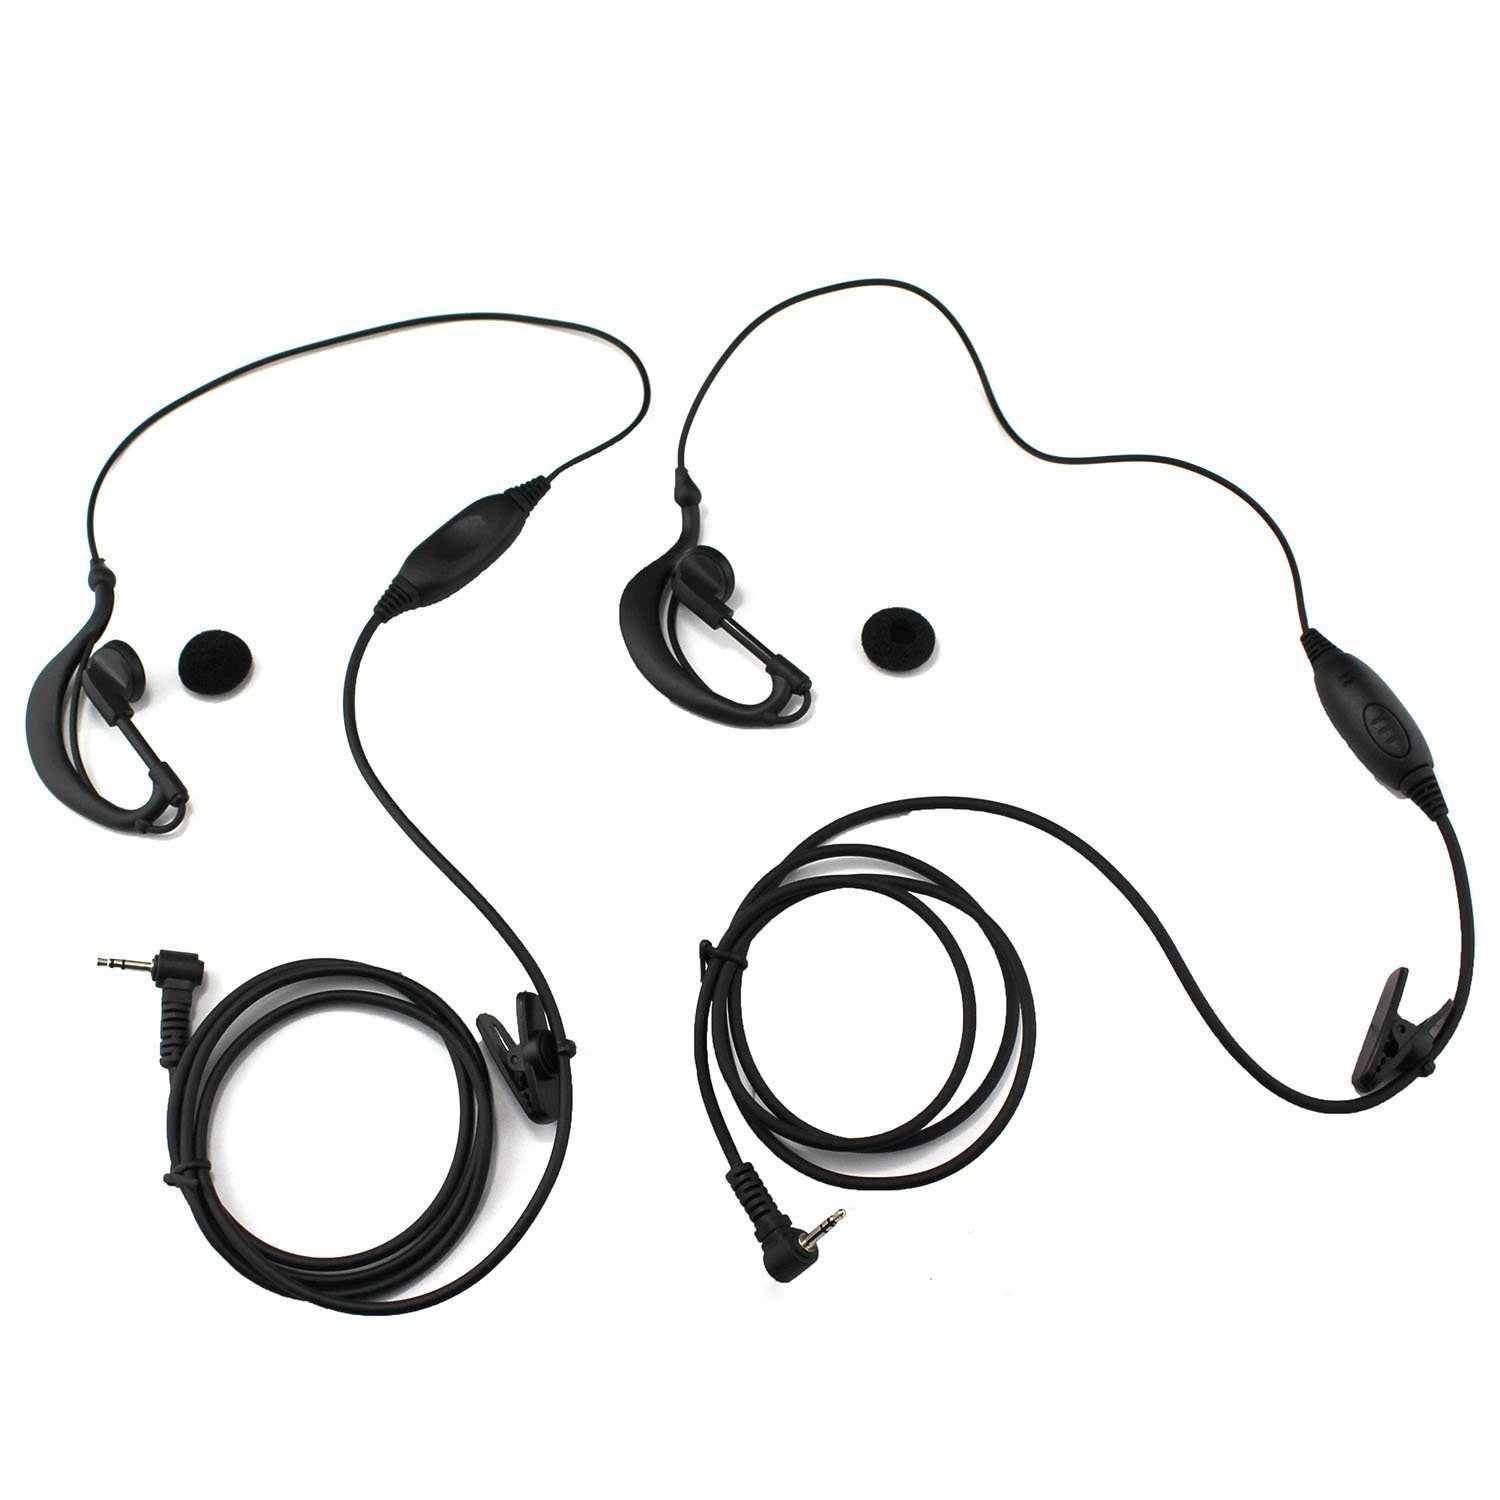 GoodQbuy G Shape Clip_Ear Headset_Earpiece Mic for